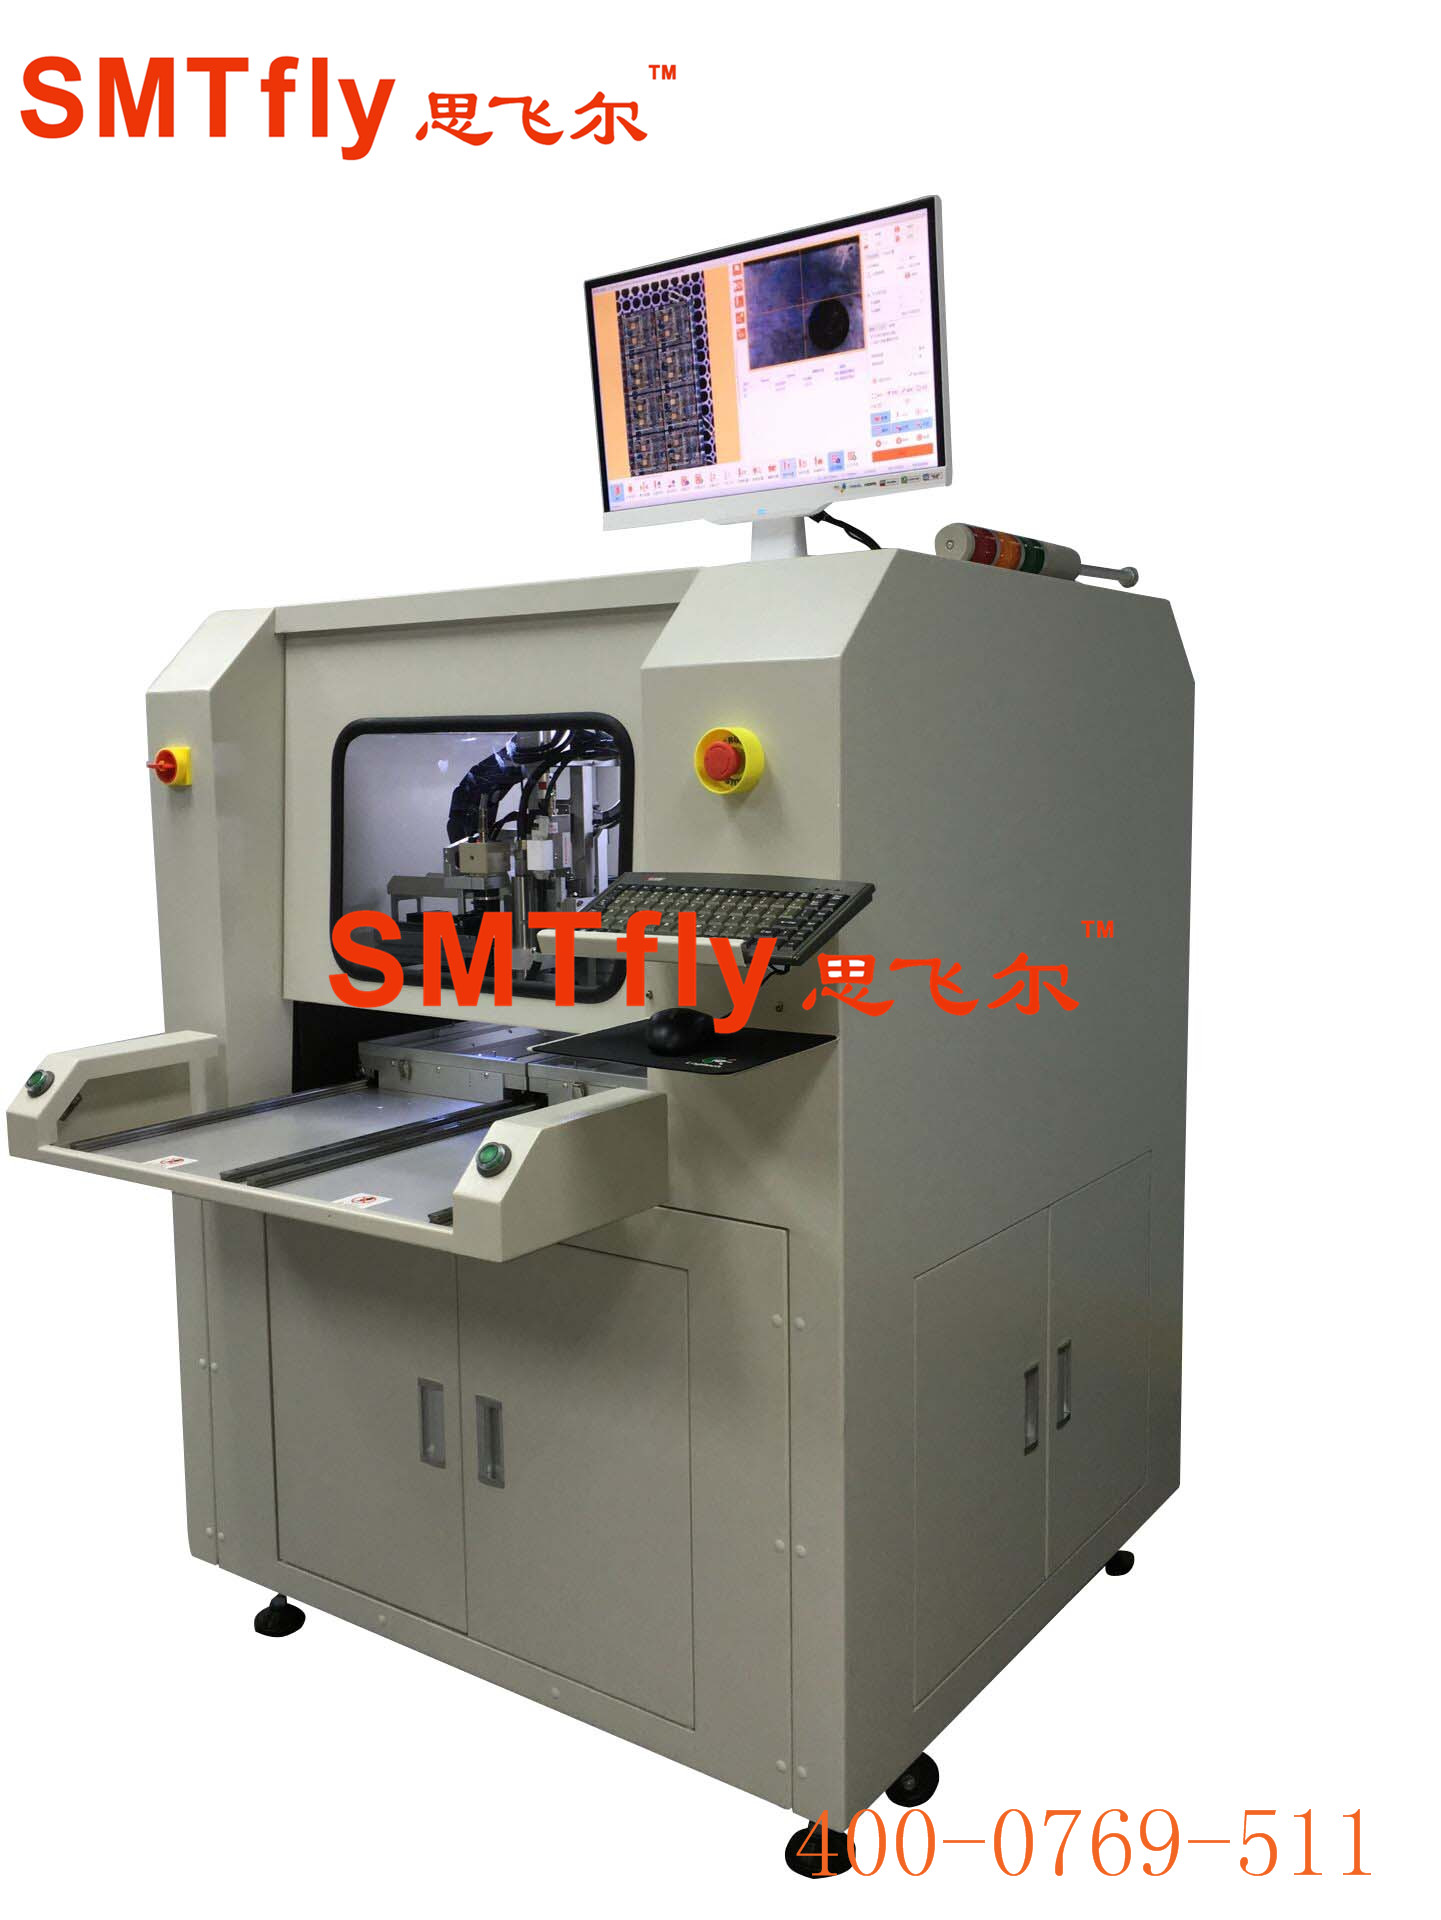 PCB Routing Equipment, SMTfly-F01-S